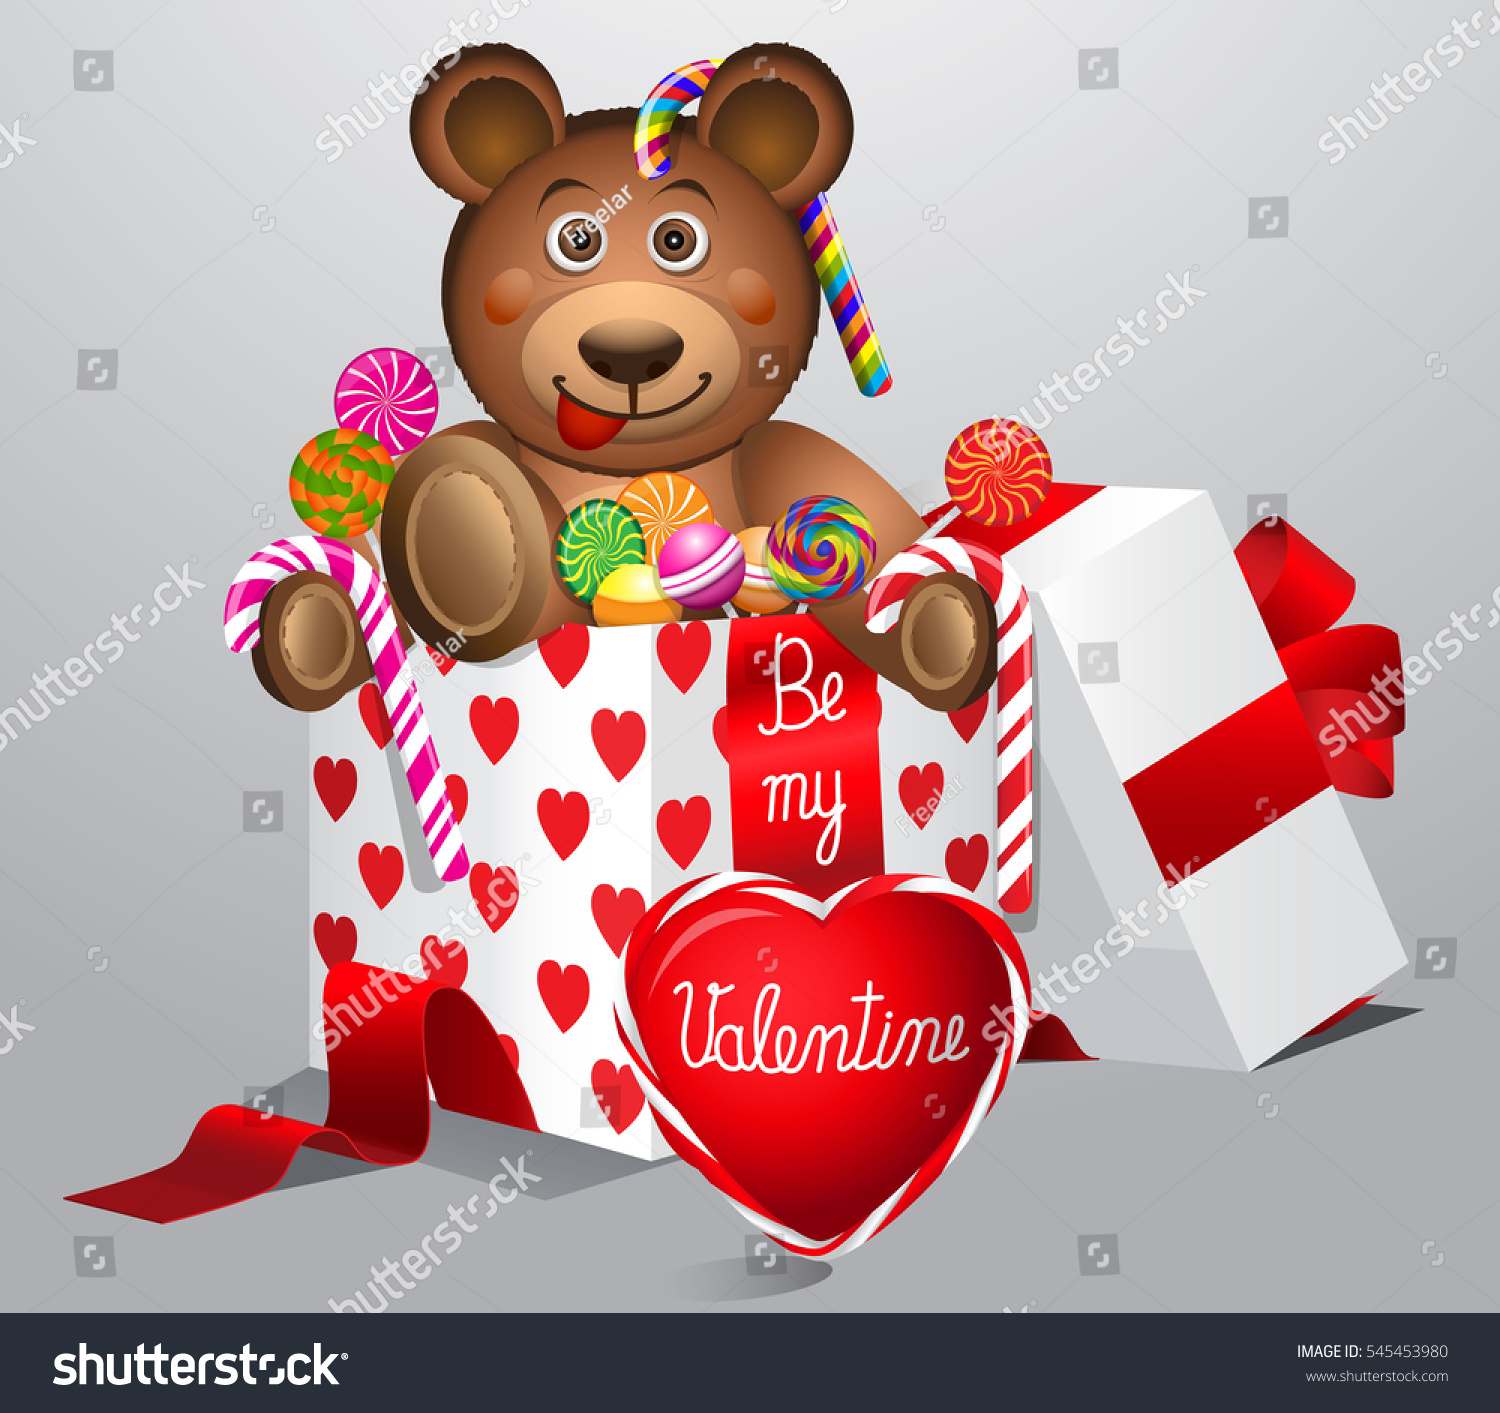 Valentines Day.Cute Valentines Day Teddy Bear With Colorful Sweets In Gift  Box Isolated On